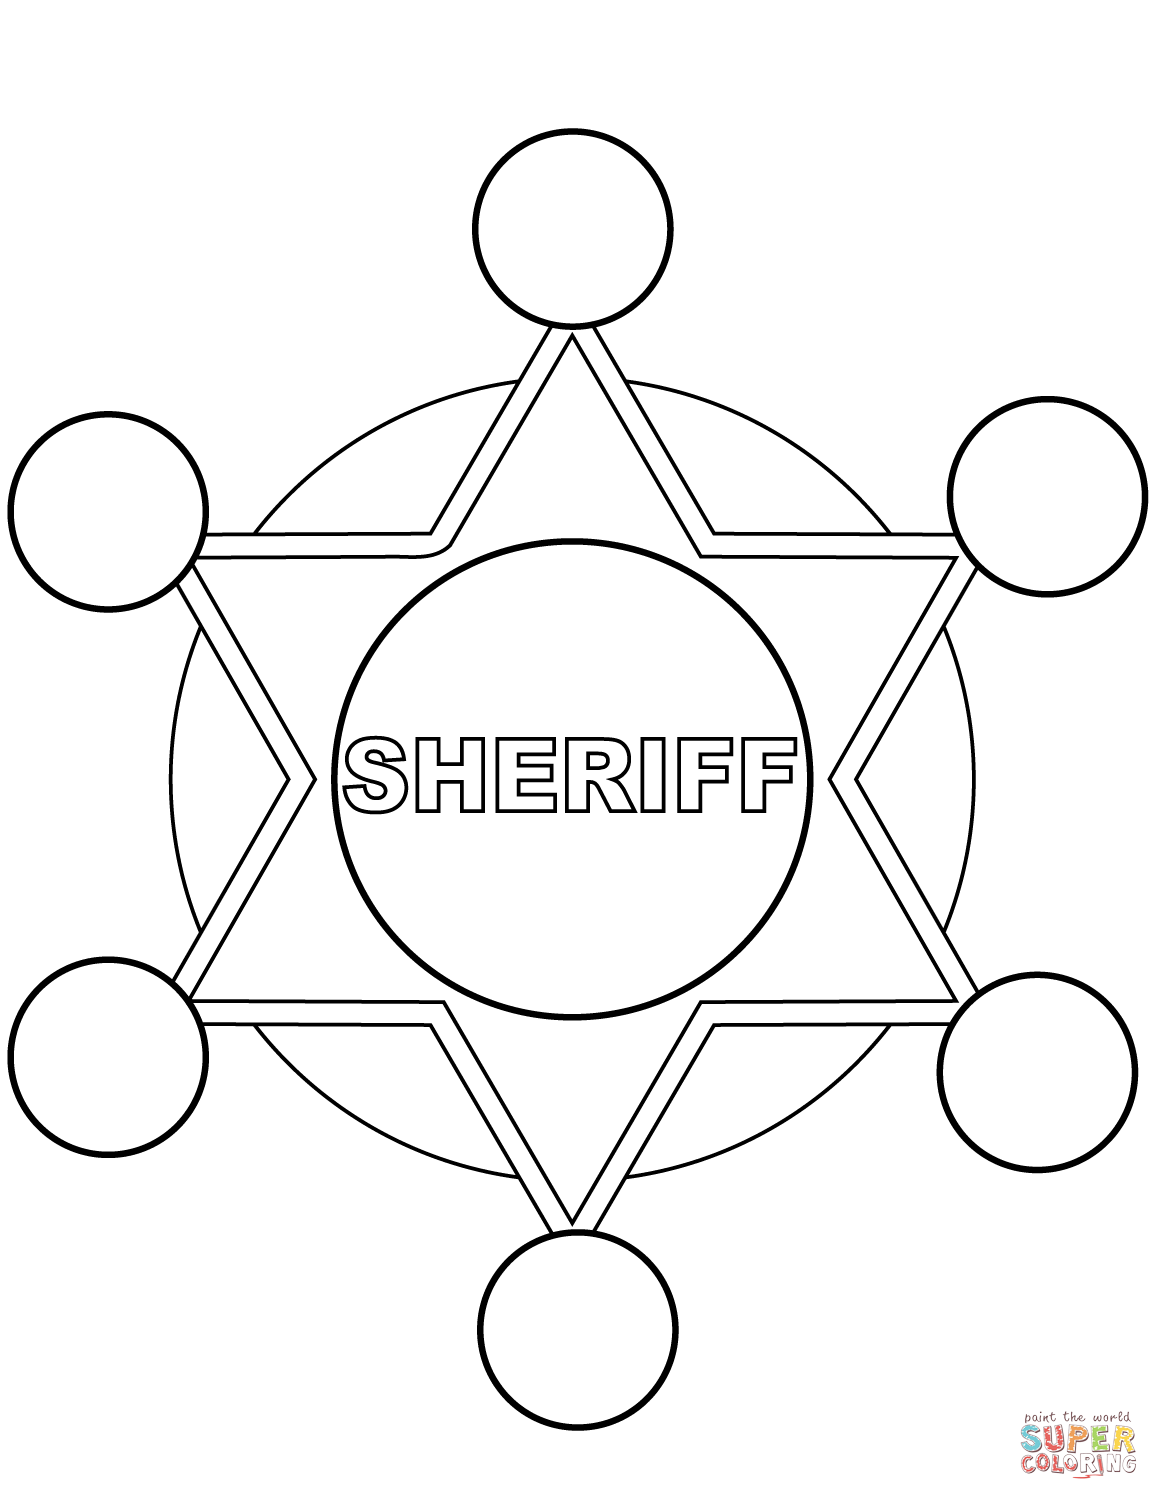 sheriff star coloring page sheriff star coloring page coloring home star page coloring sheriff